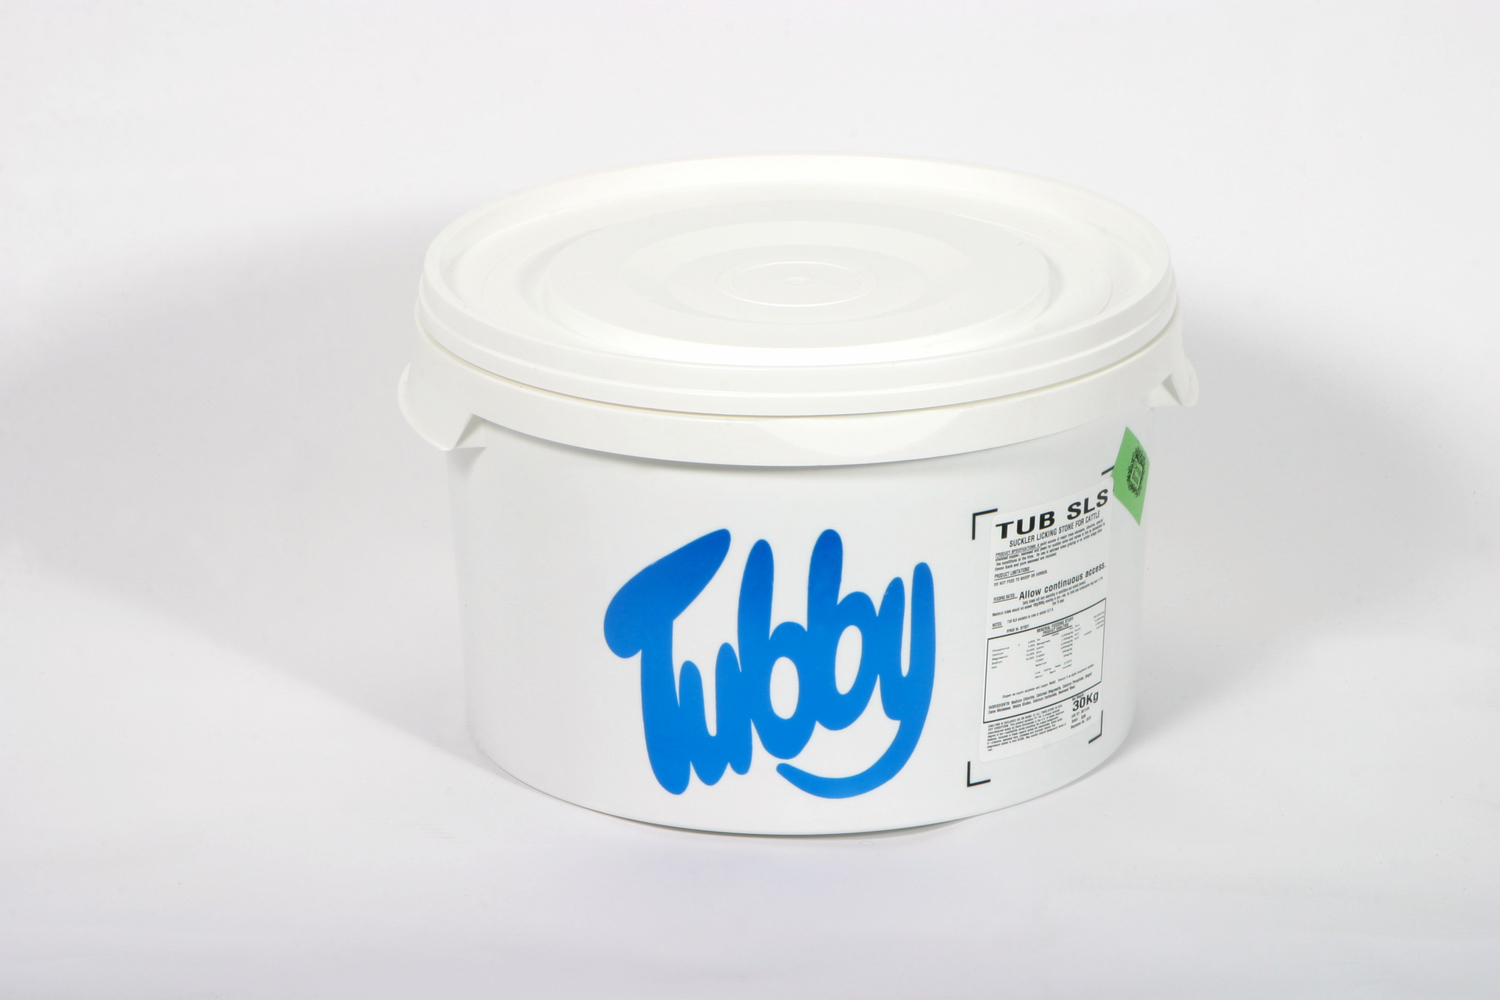 Tubby - Forbut Sheep Bucket (Orf Treatment)